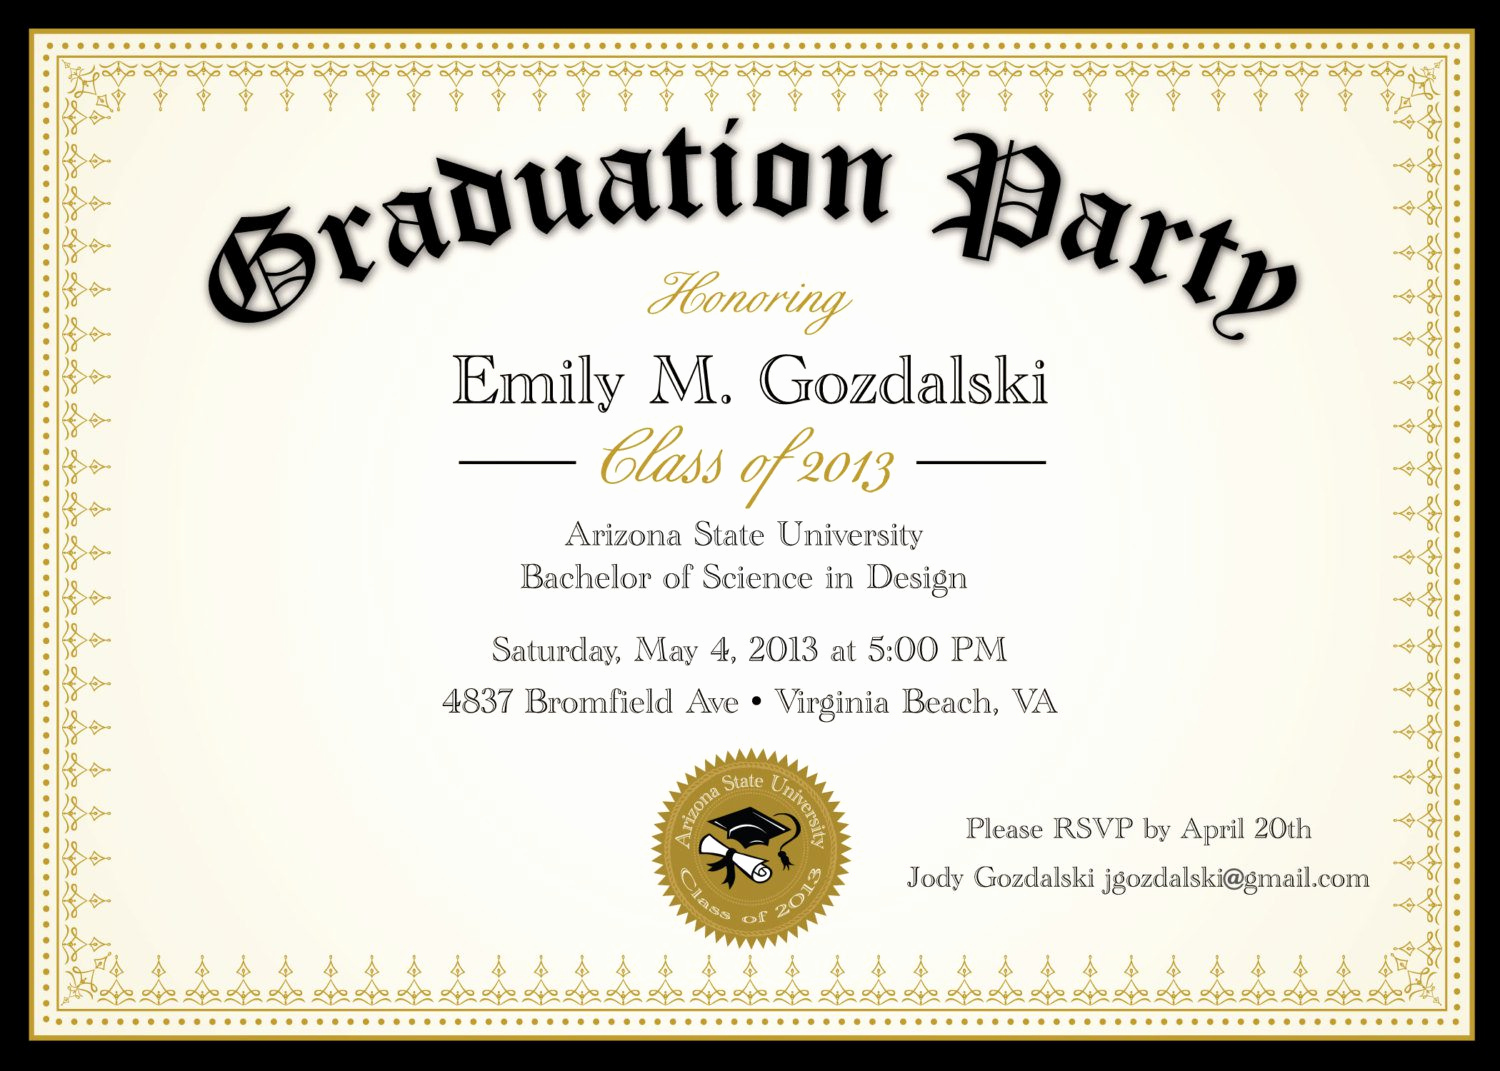 Graduation Ceremony Invitation Wording Fresh Graduation Invitation Templates Graduation Ceremony